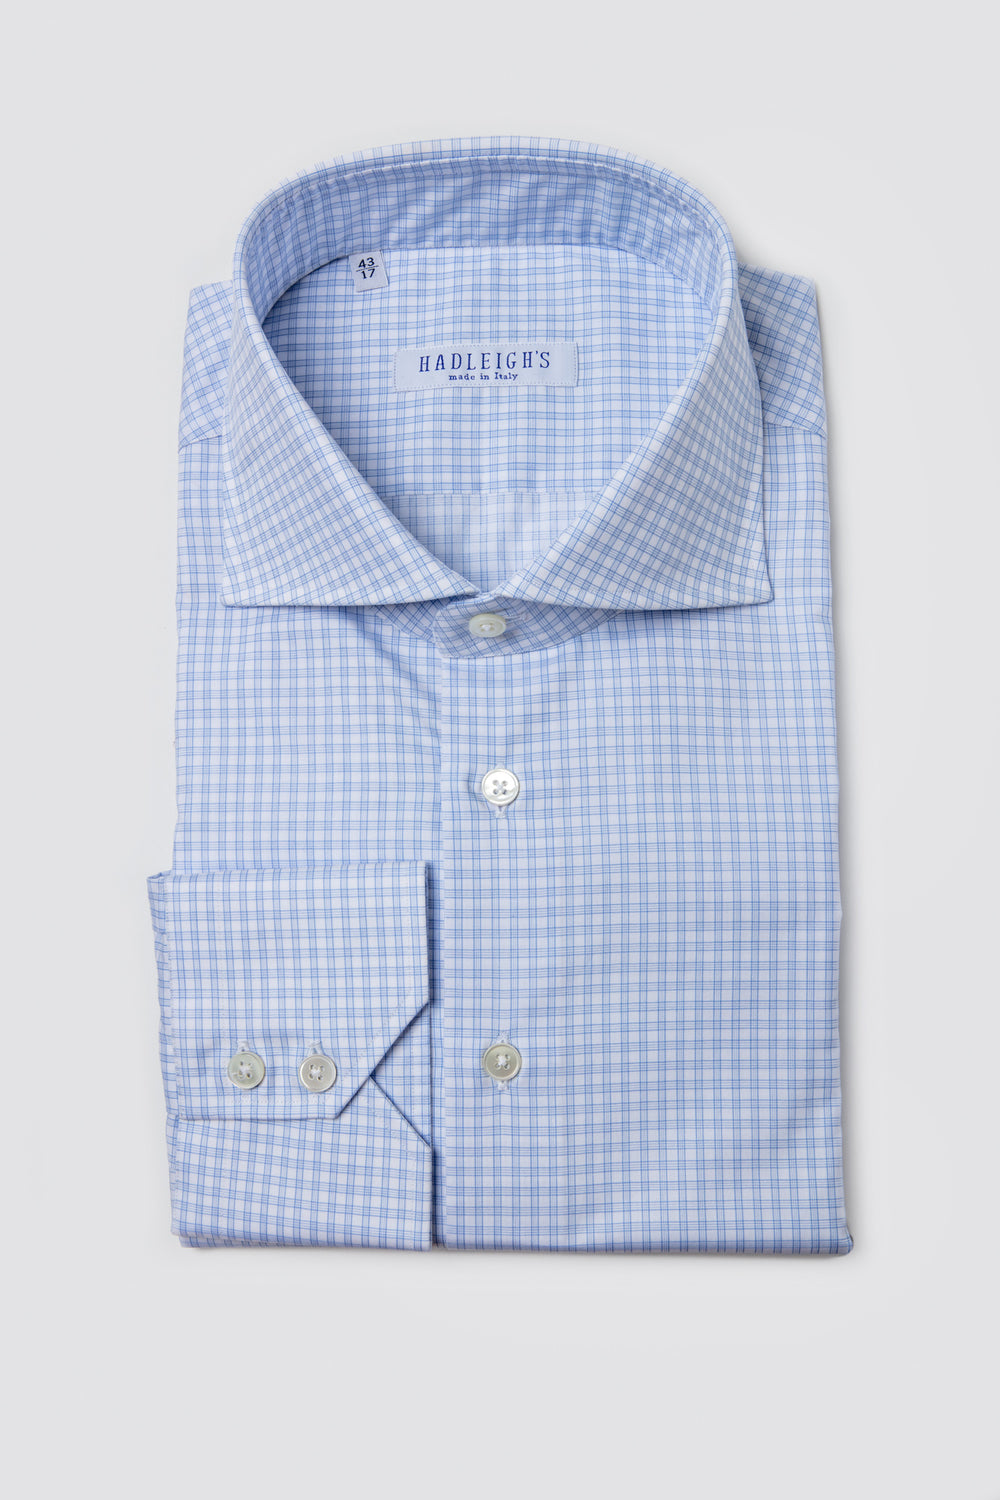 White and Blue Multi-Check Shirt